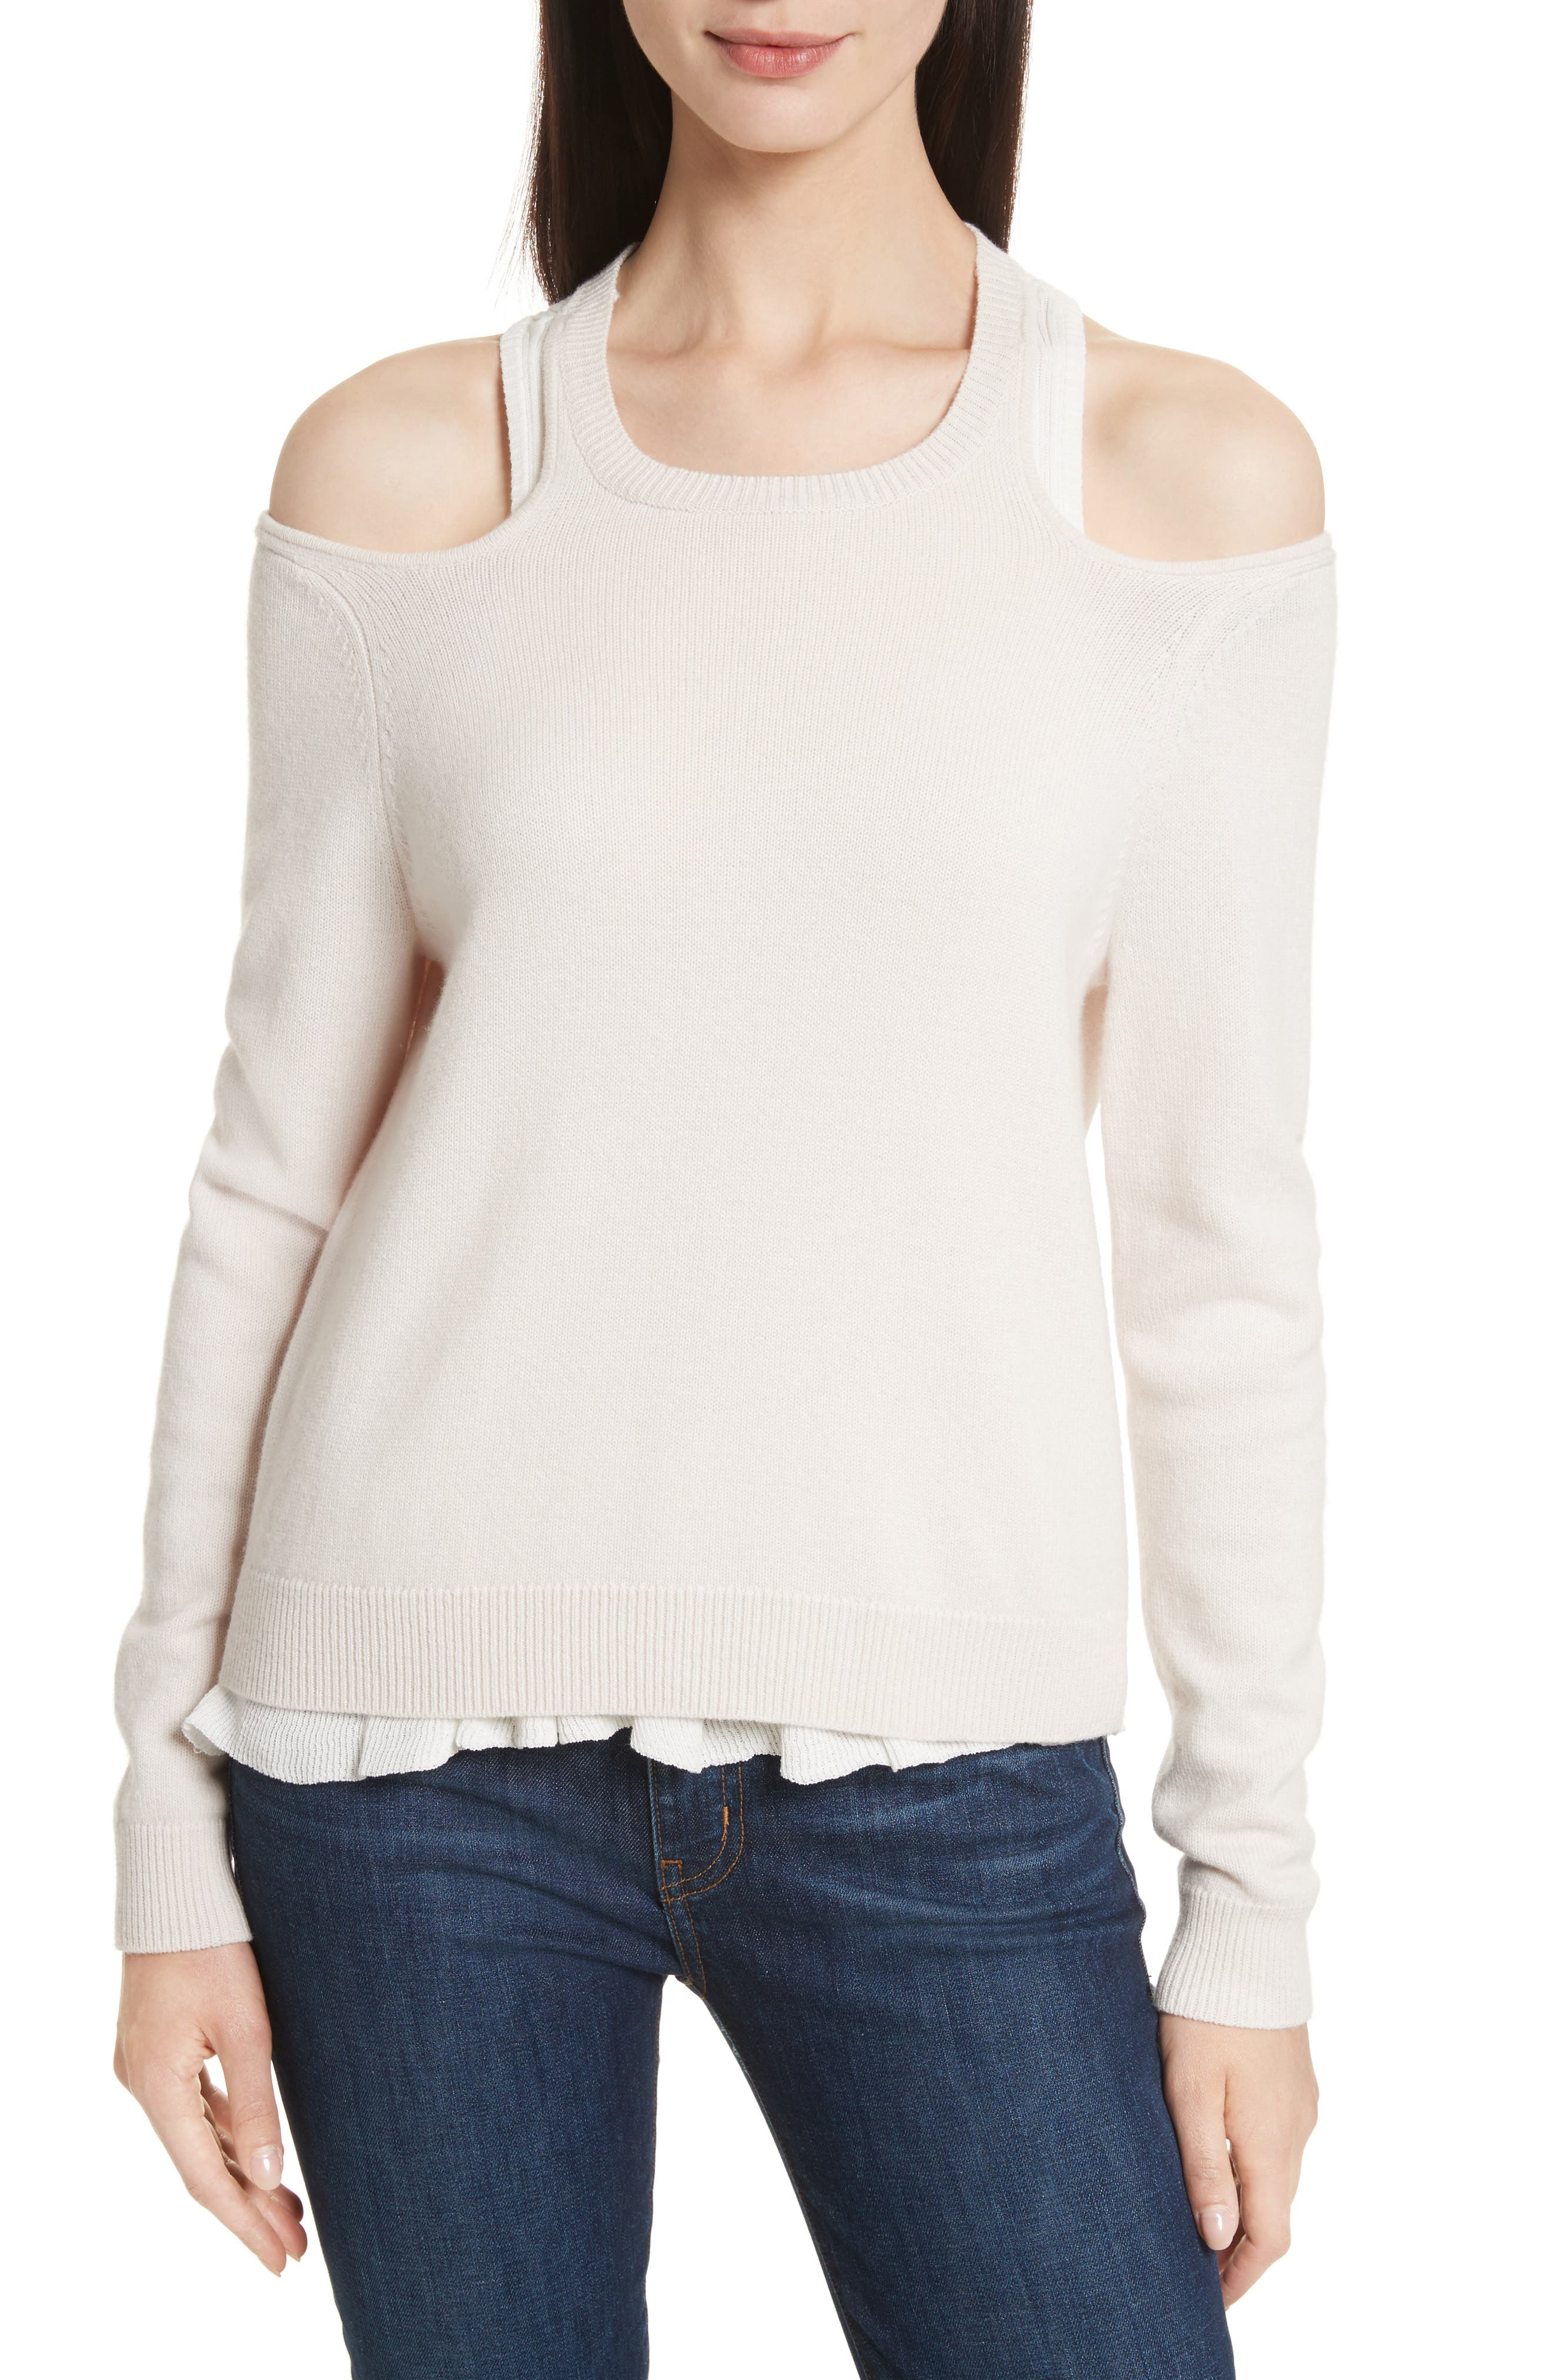 Derek Lam 10 Crosby Layered Cold Shoulder Sweater